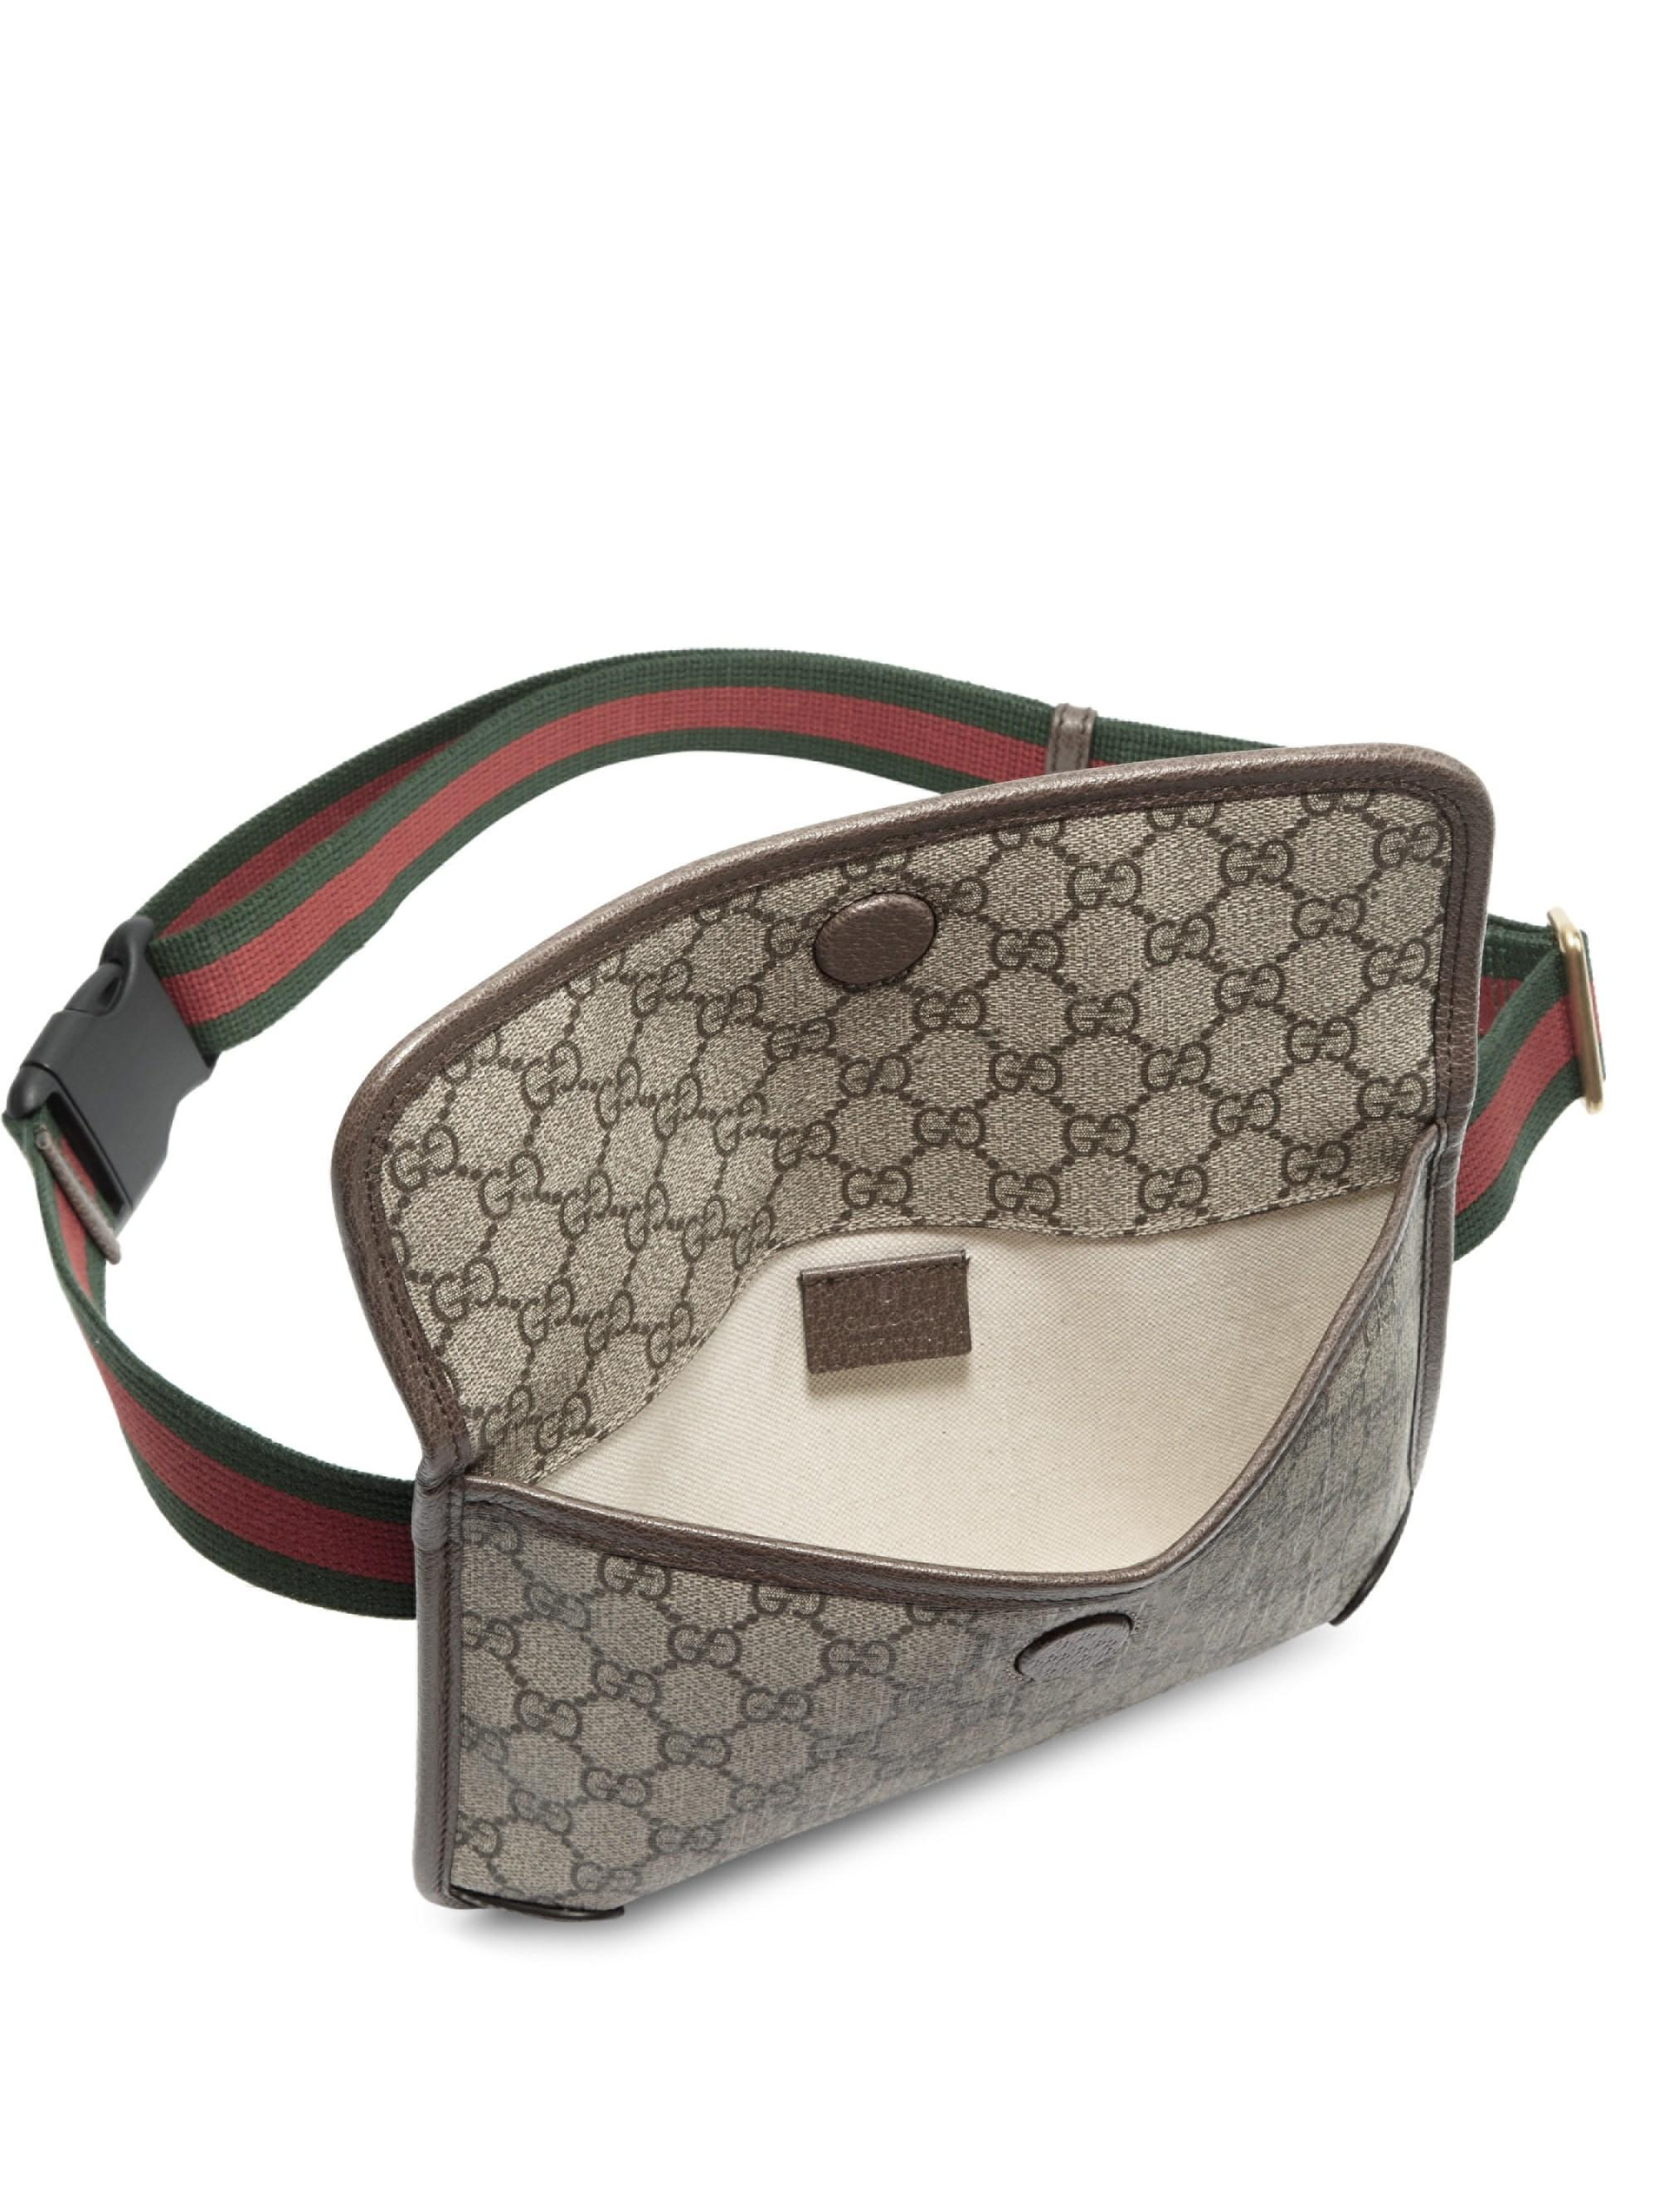 525909c47b54b1 Gucci Neo Vintage Canvas Belt Bag in Natural - Lyst